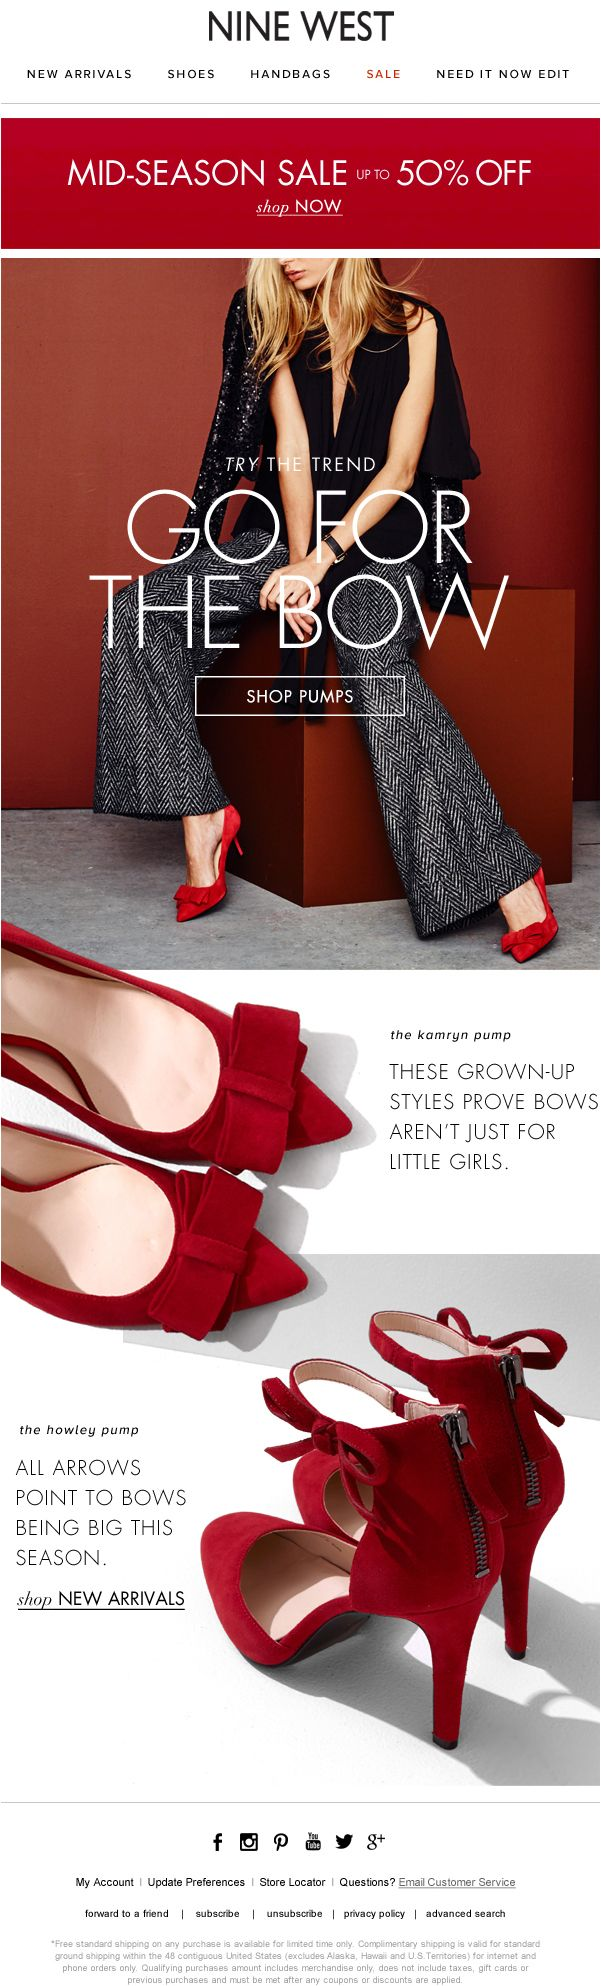 #ninewest #mosborne #email #layout #shoes